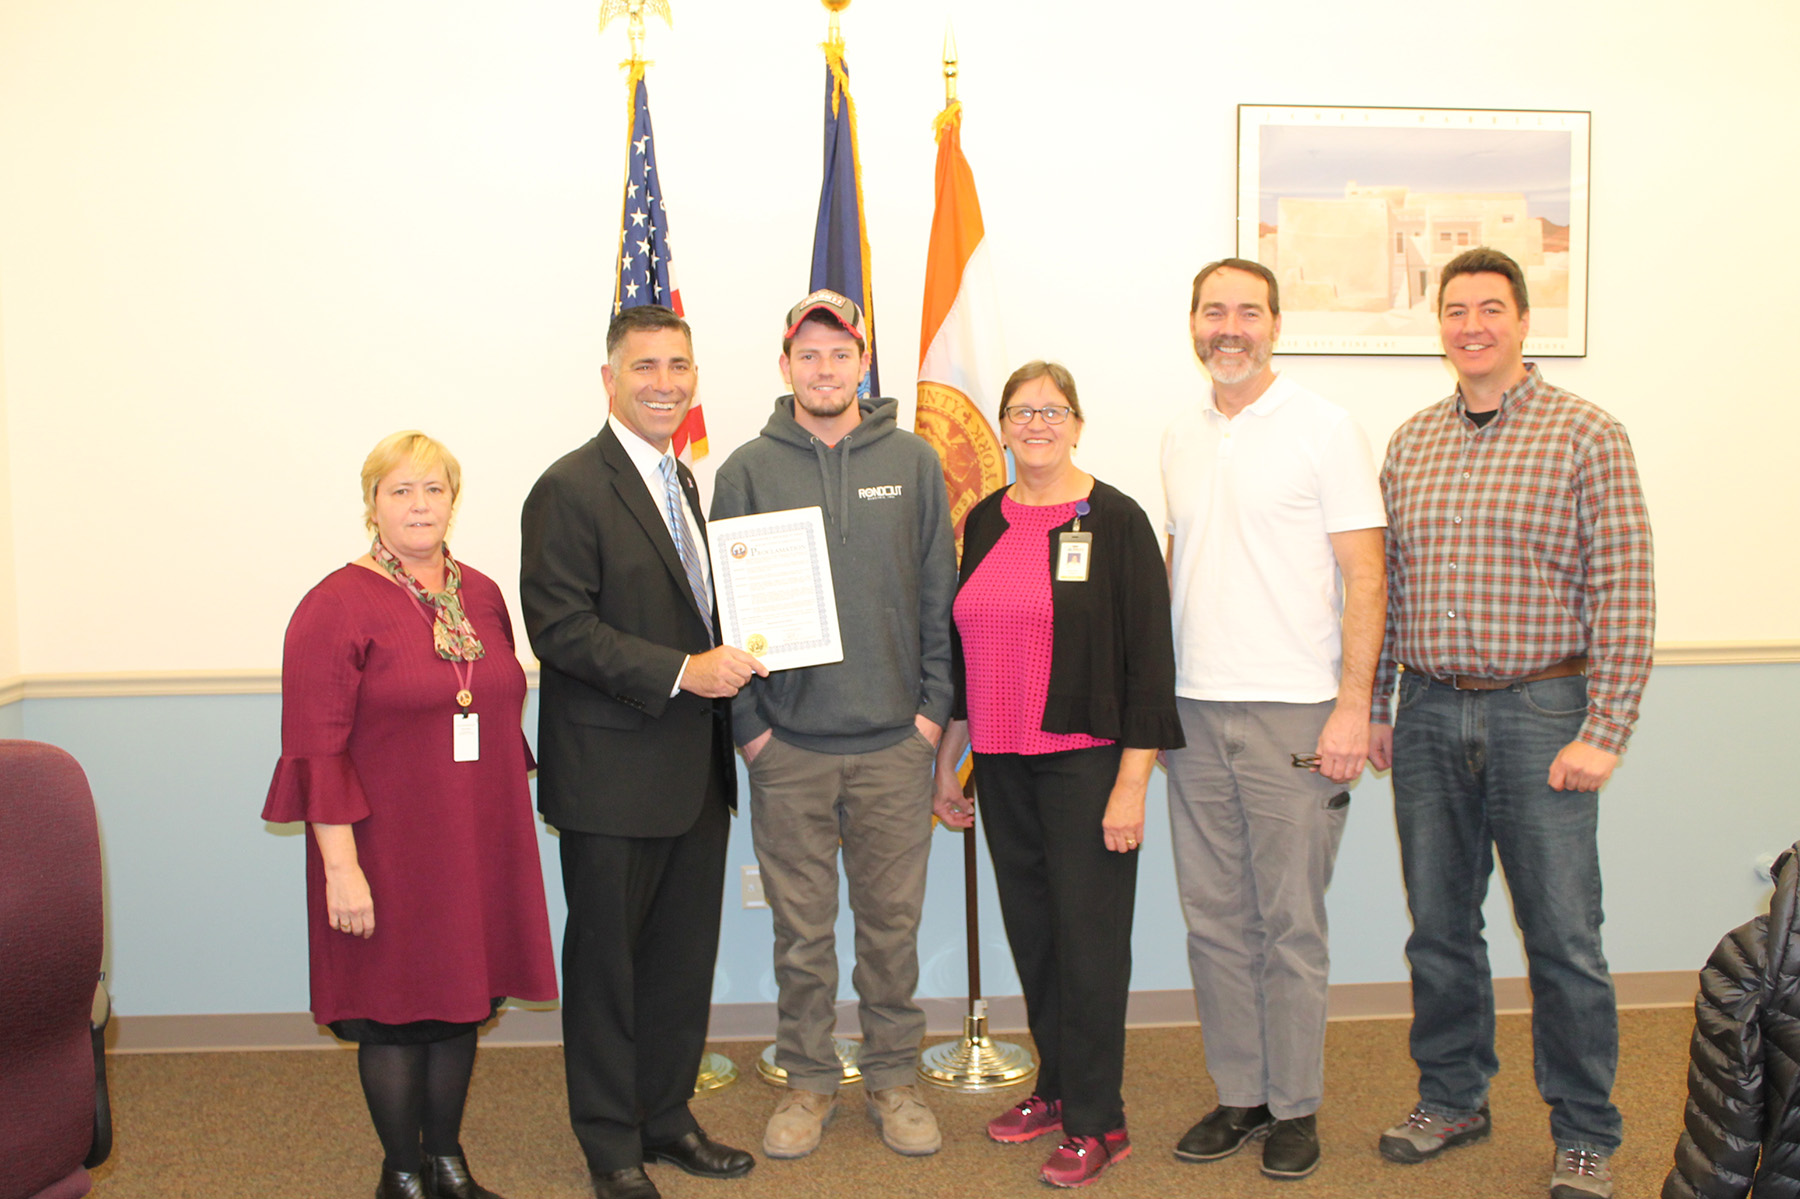 Ulster BOCES Adult Career Education Center Recognized During Apprenticeship Week Proclamation Event